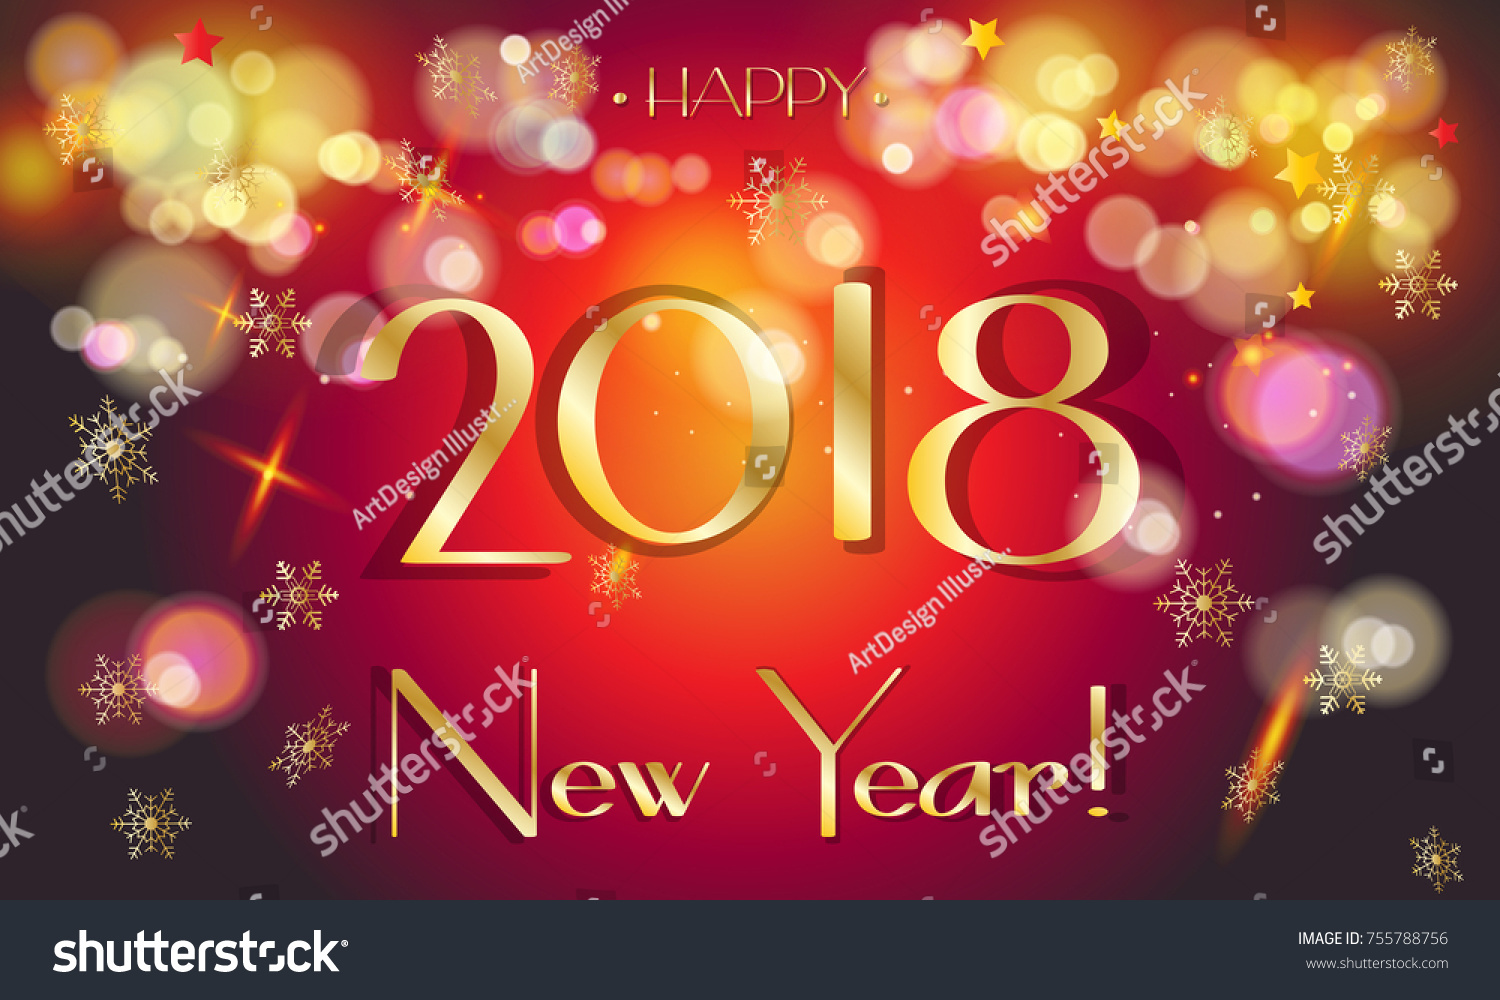 2018 Happy New Year Greeting Card Stock Illustration 755788756